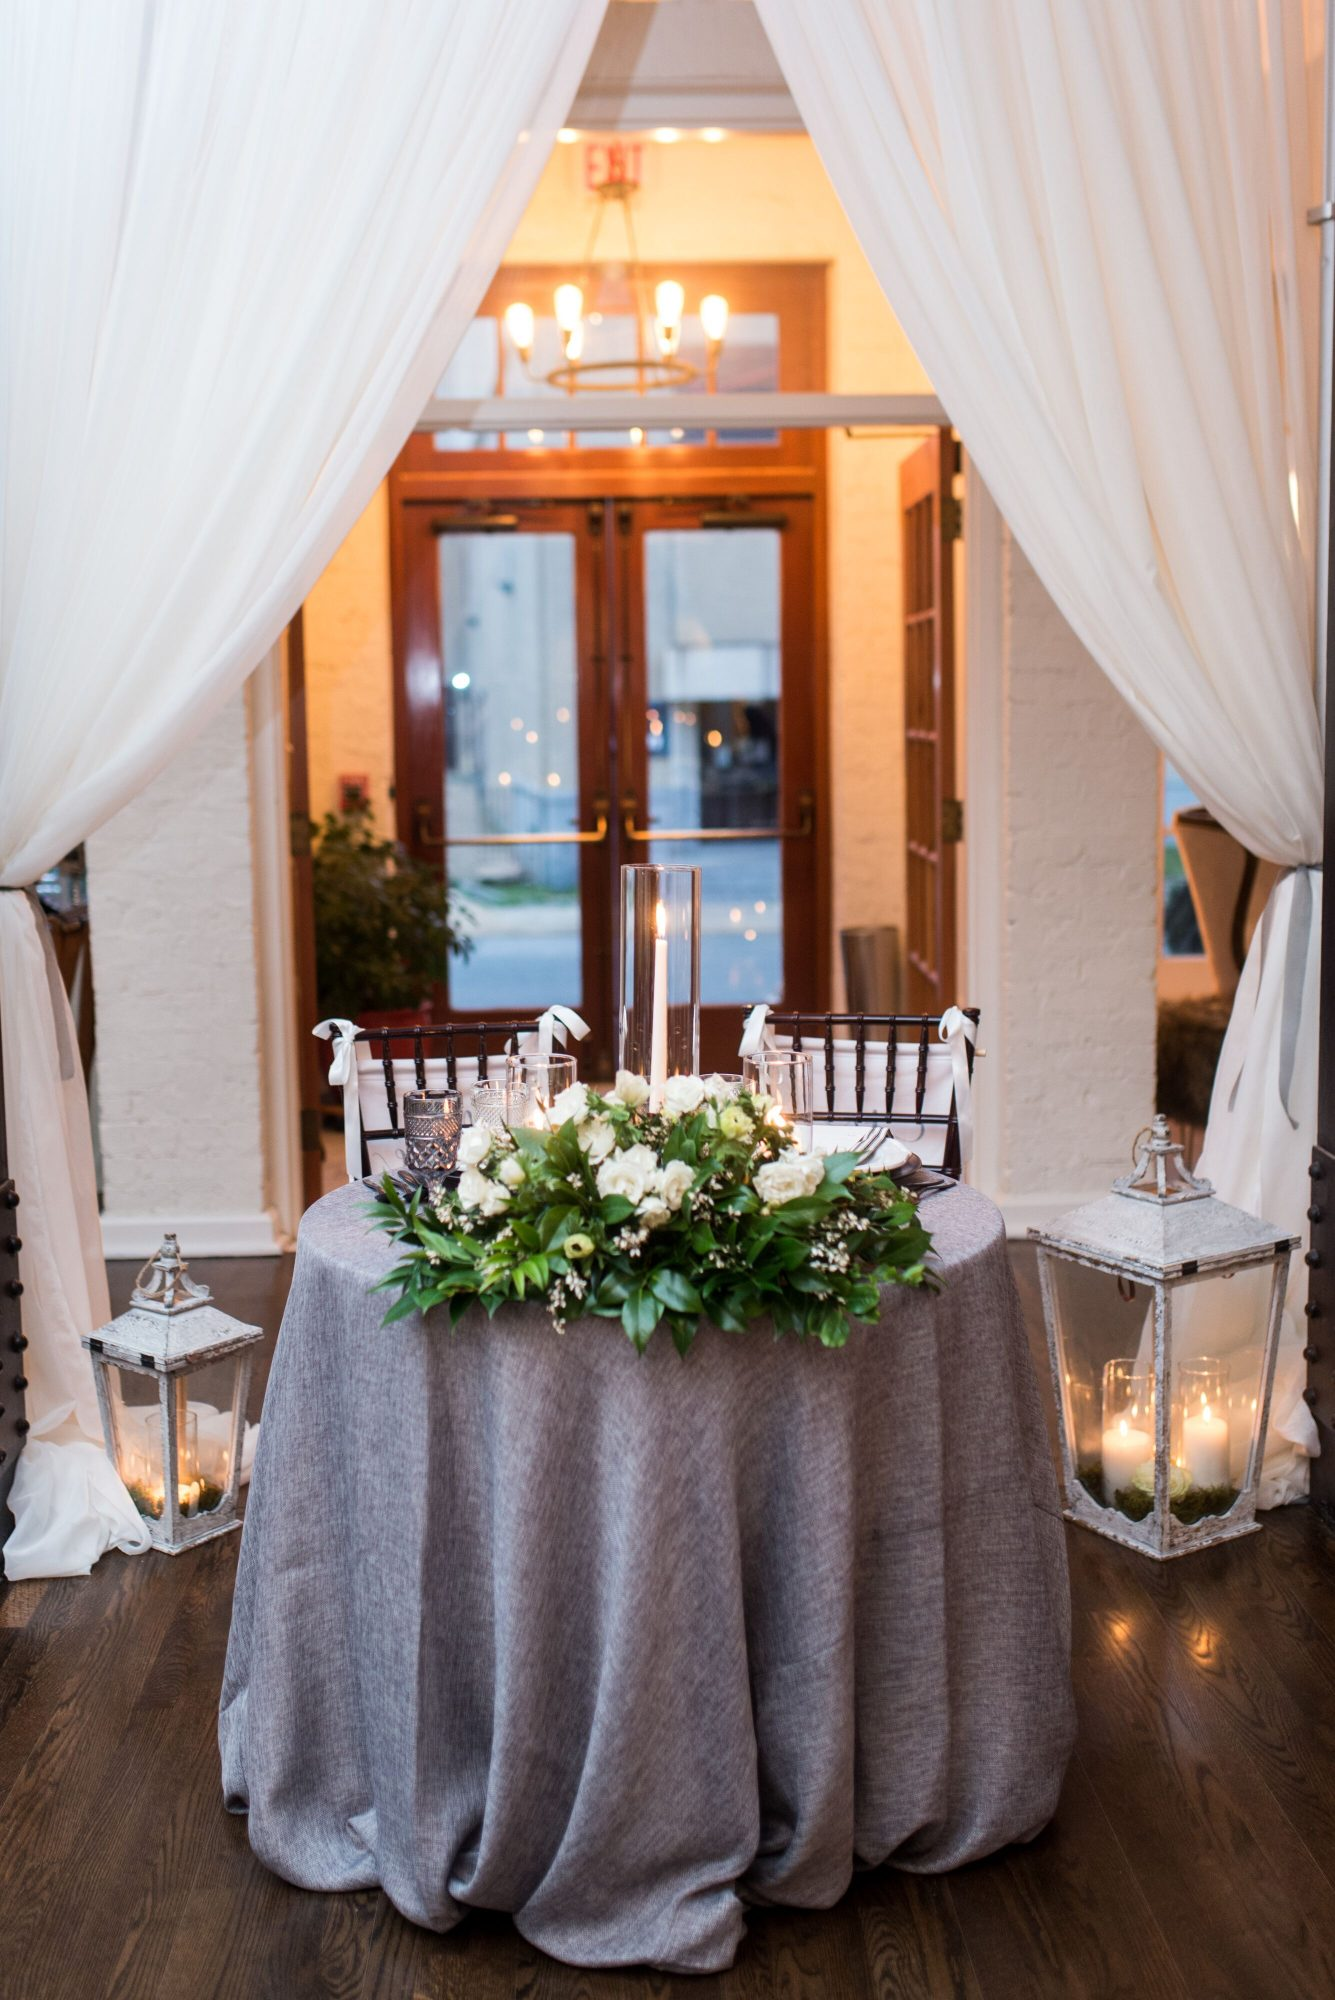 Waterford Wednesday: Special Sweetheart Tables